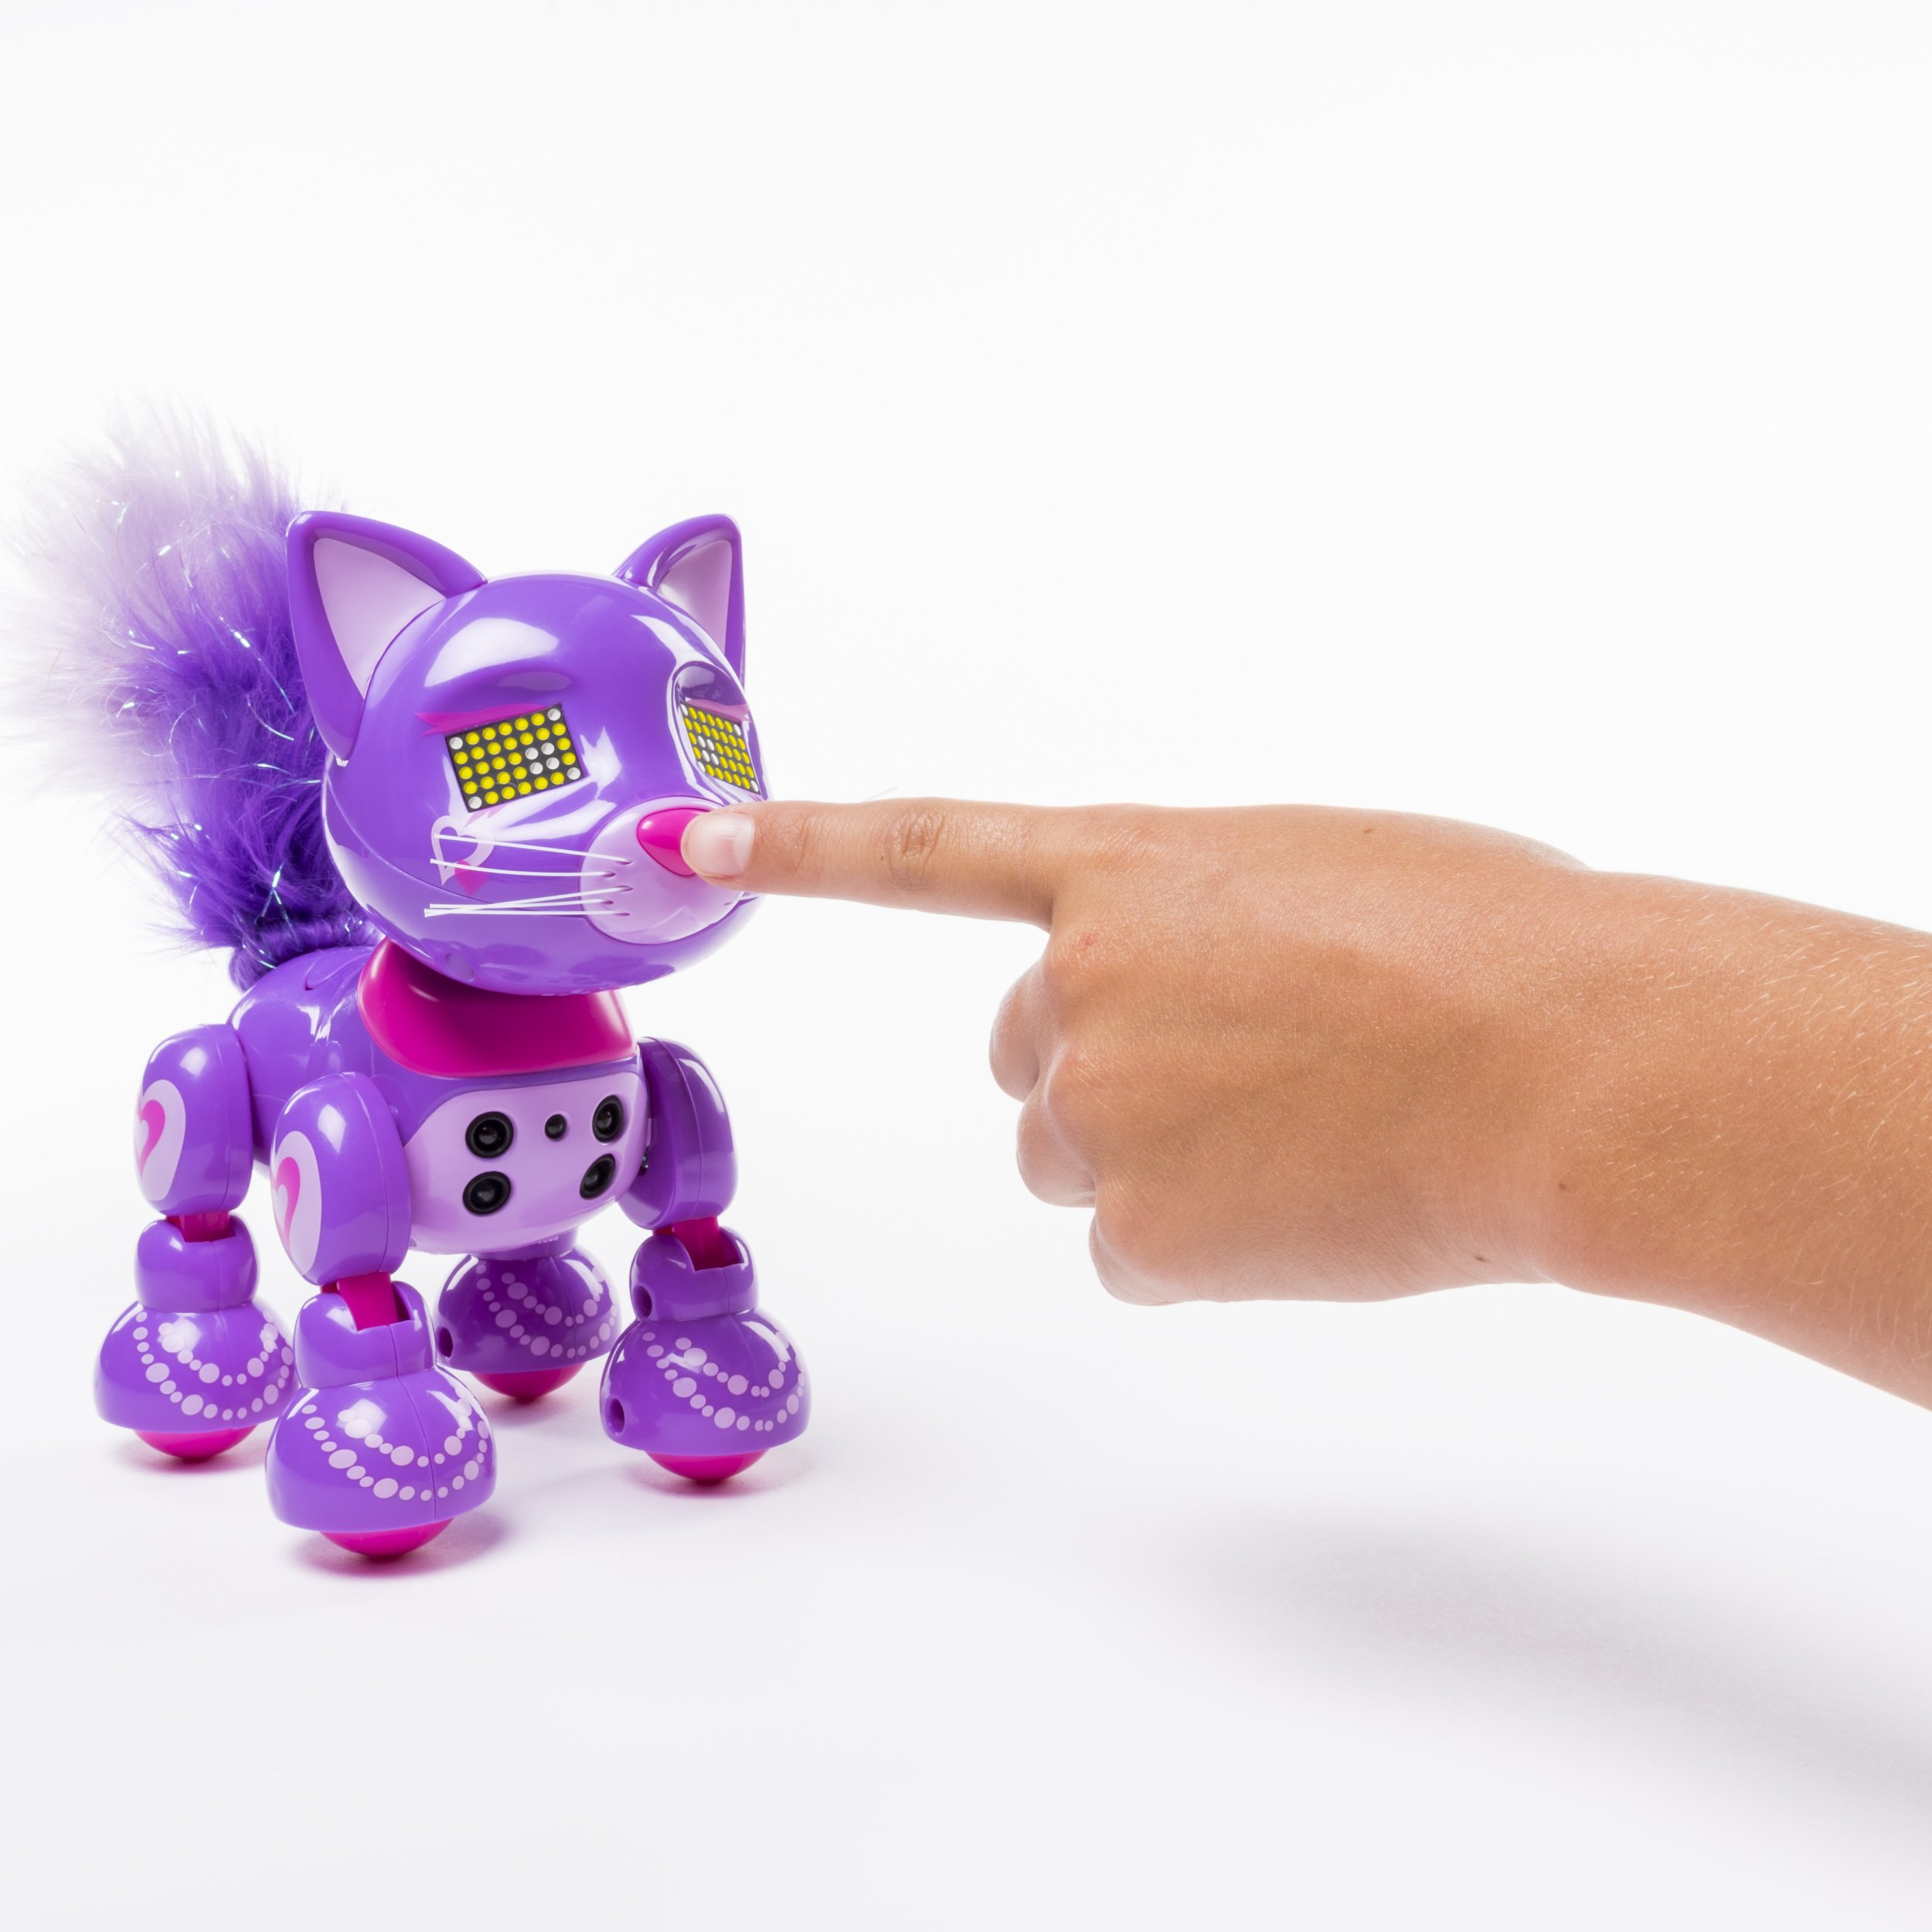 Zoomer Meowzies, Posh, Interactive Kitten with Lights, Sounds and Sensors by Zoomer (Image #5)